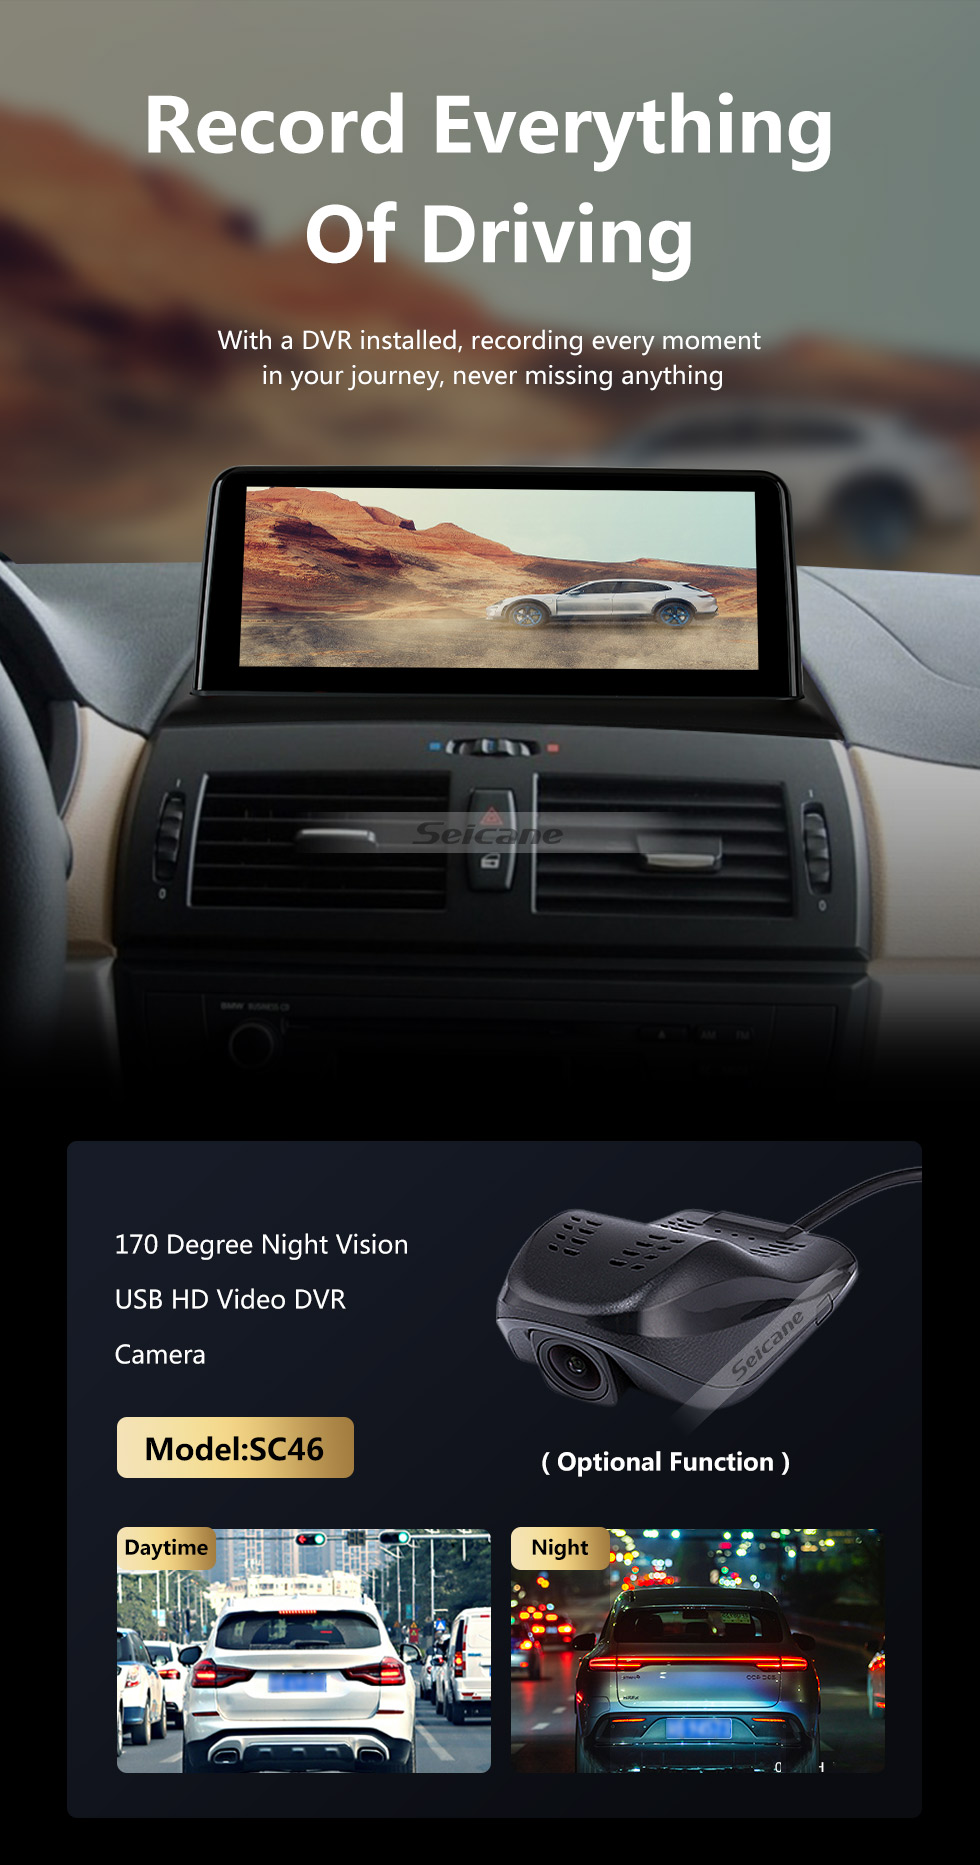 Seicane 10.25 inch 2004-2009 BMW X3 E83 Android 9.0 Touchscreen GPS Navigation Bluetooth Stereo with Music AUX WIFI support DAB+ OBD2 DVR Digital TV